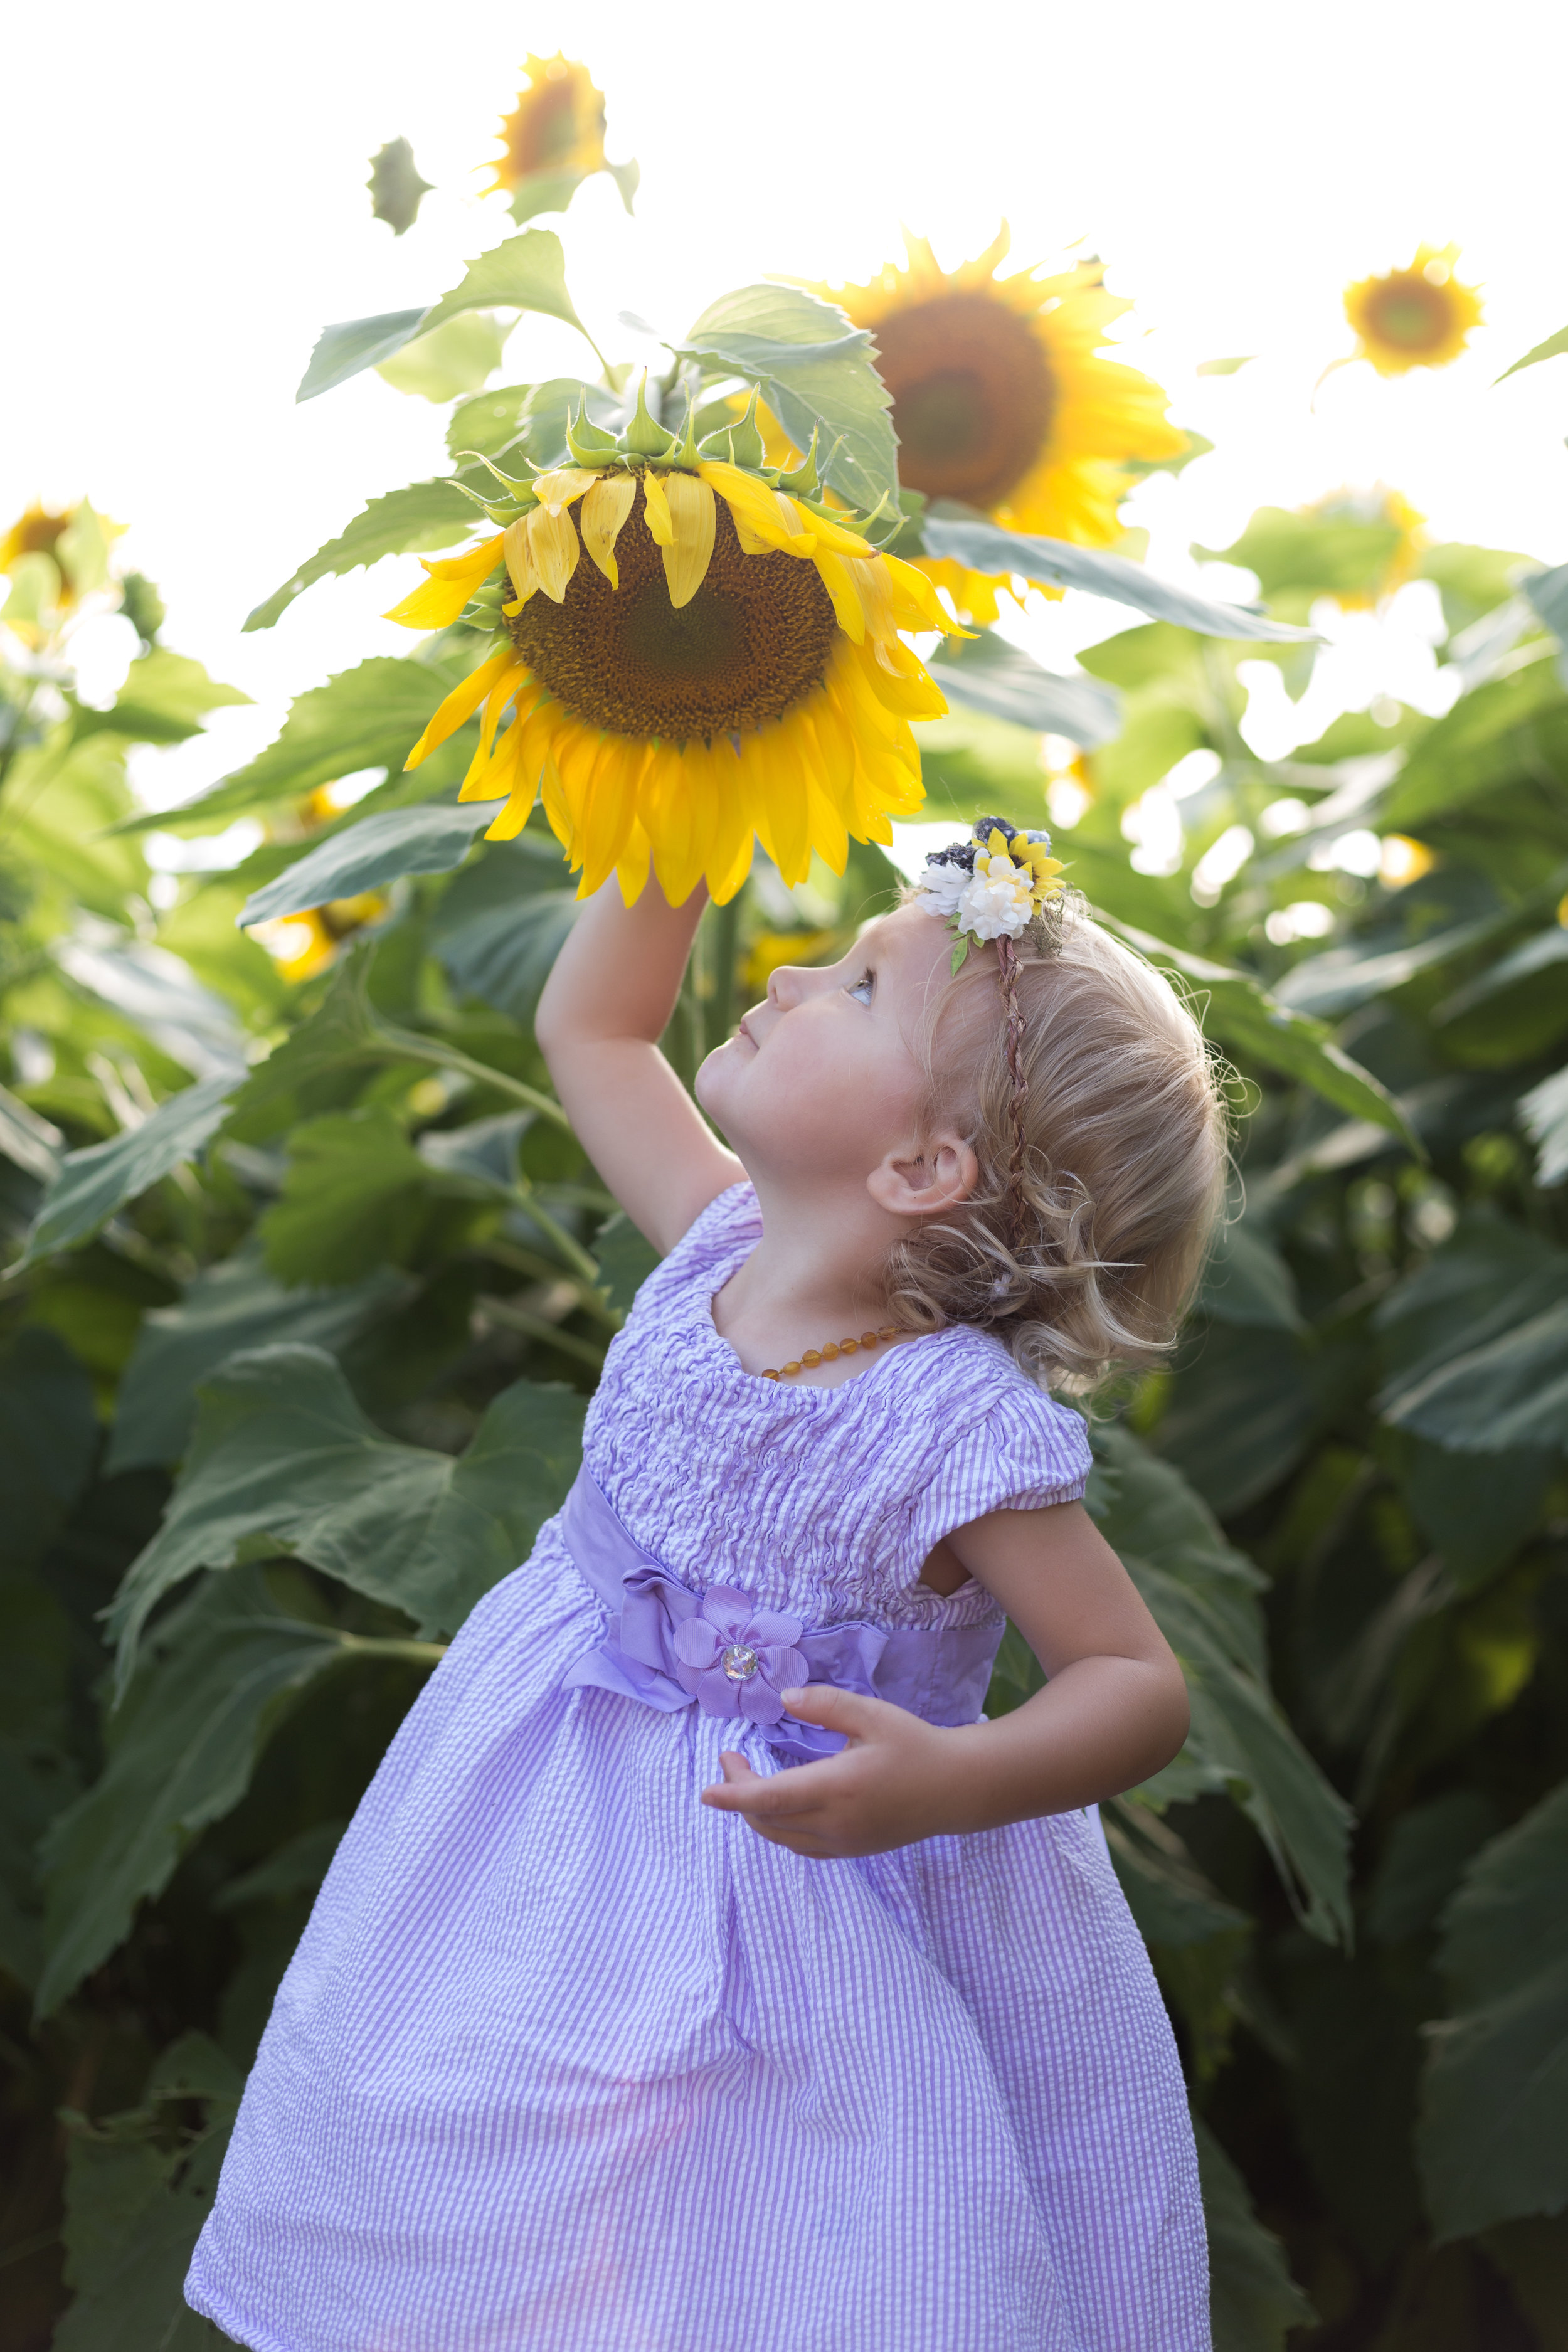 All the kids loved smelling and discovering the beautiful Sunflowers!